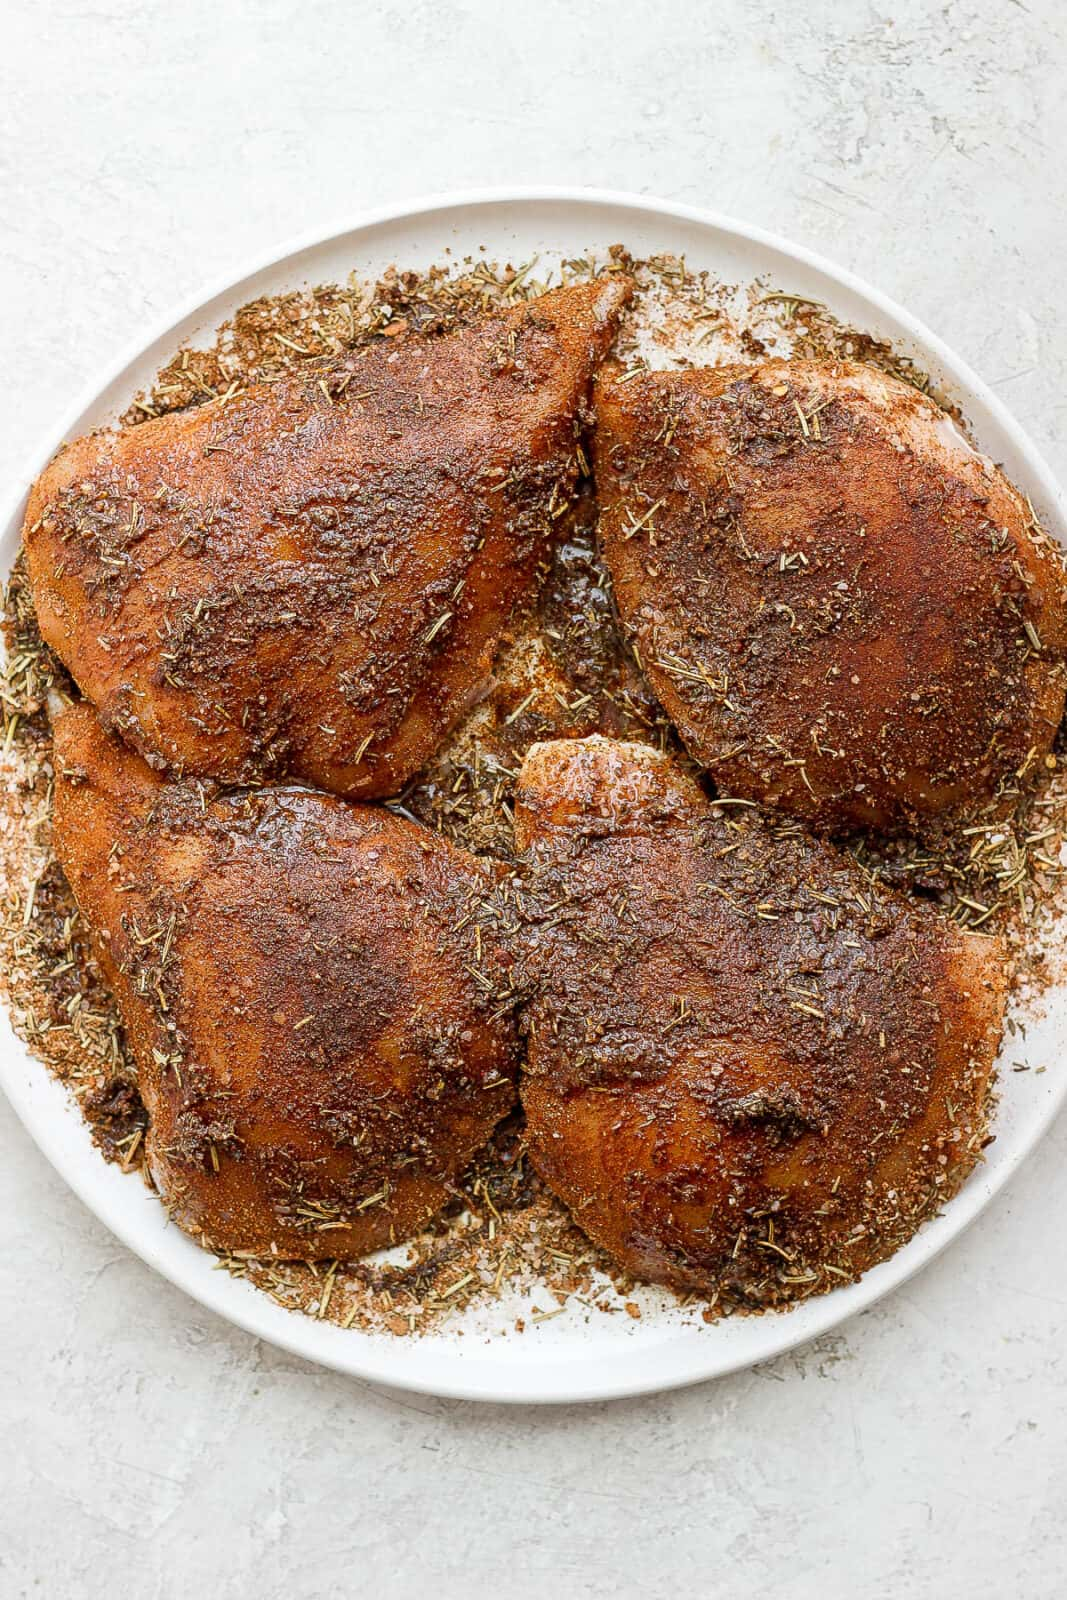 Chicken covered in jerk seasoning on a plate.